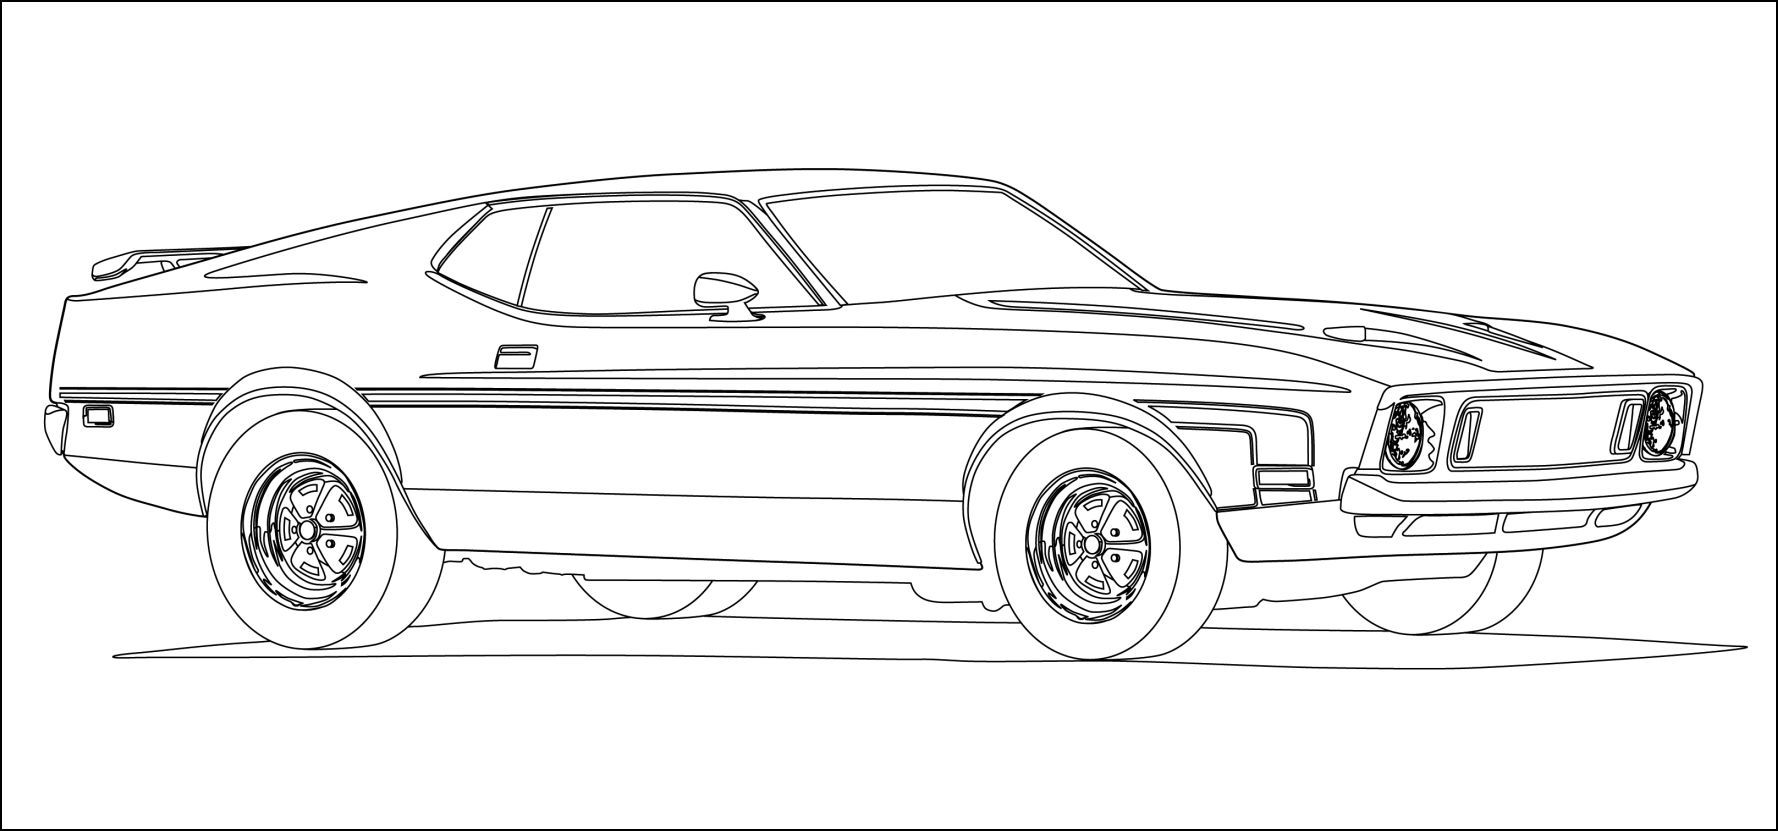 Race Car Coloring Pages Cars Coloring Pages Race Car Coloring